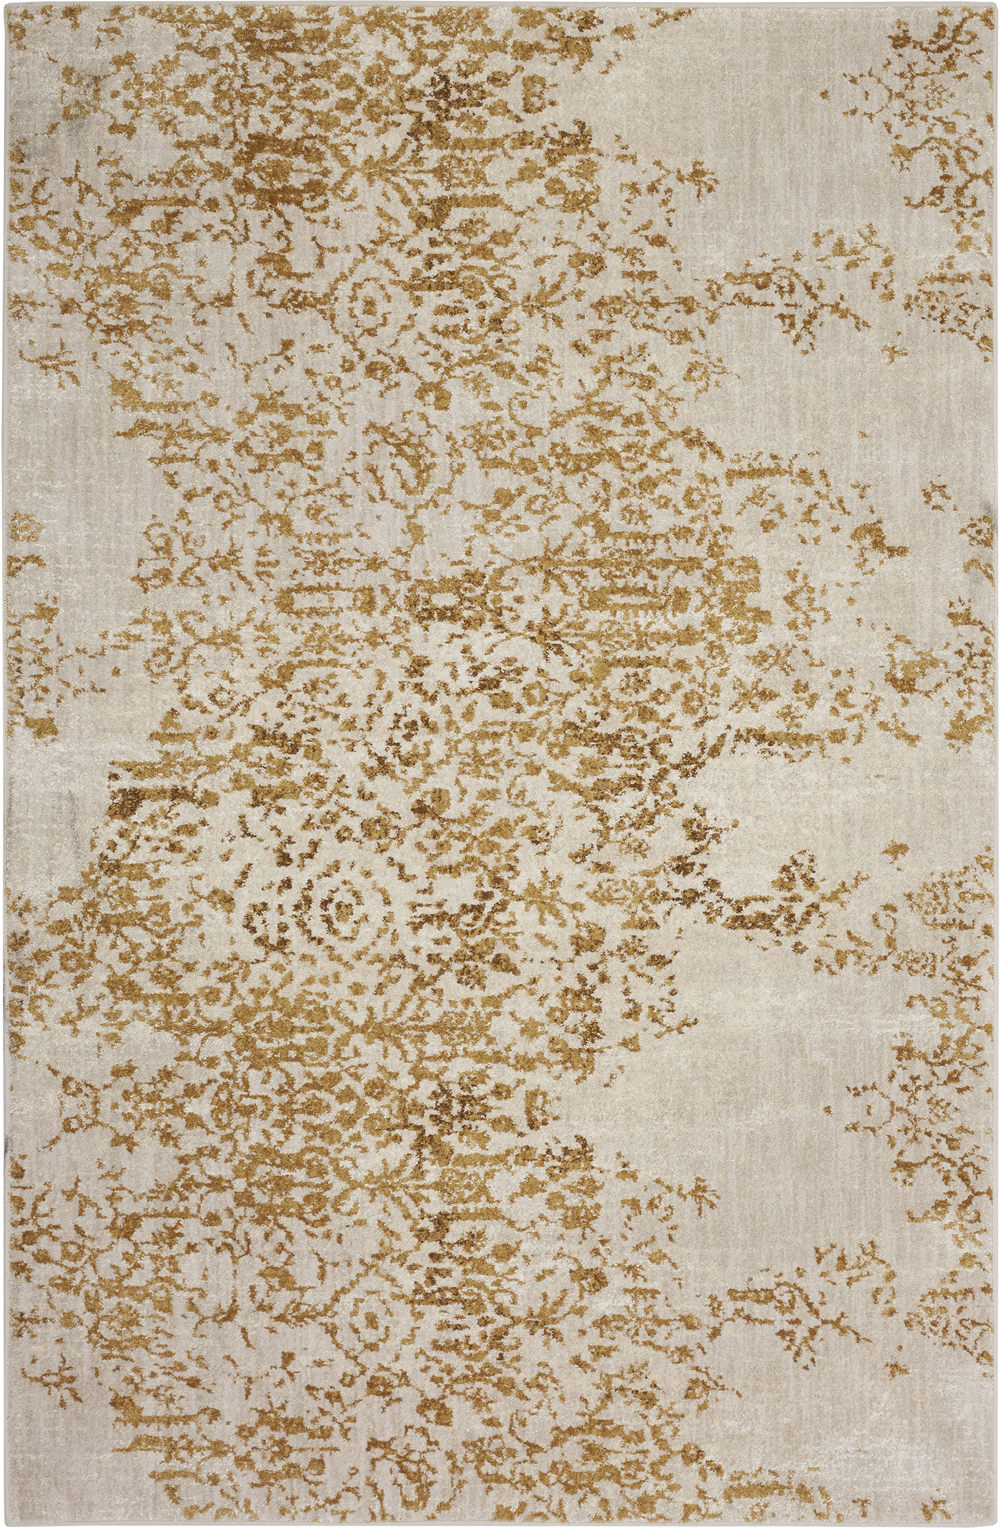 Karastan Cosmopolitan 90953 Nirvana Brushed Gold by Virginia Langley Rug